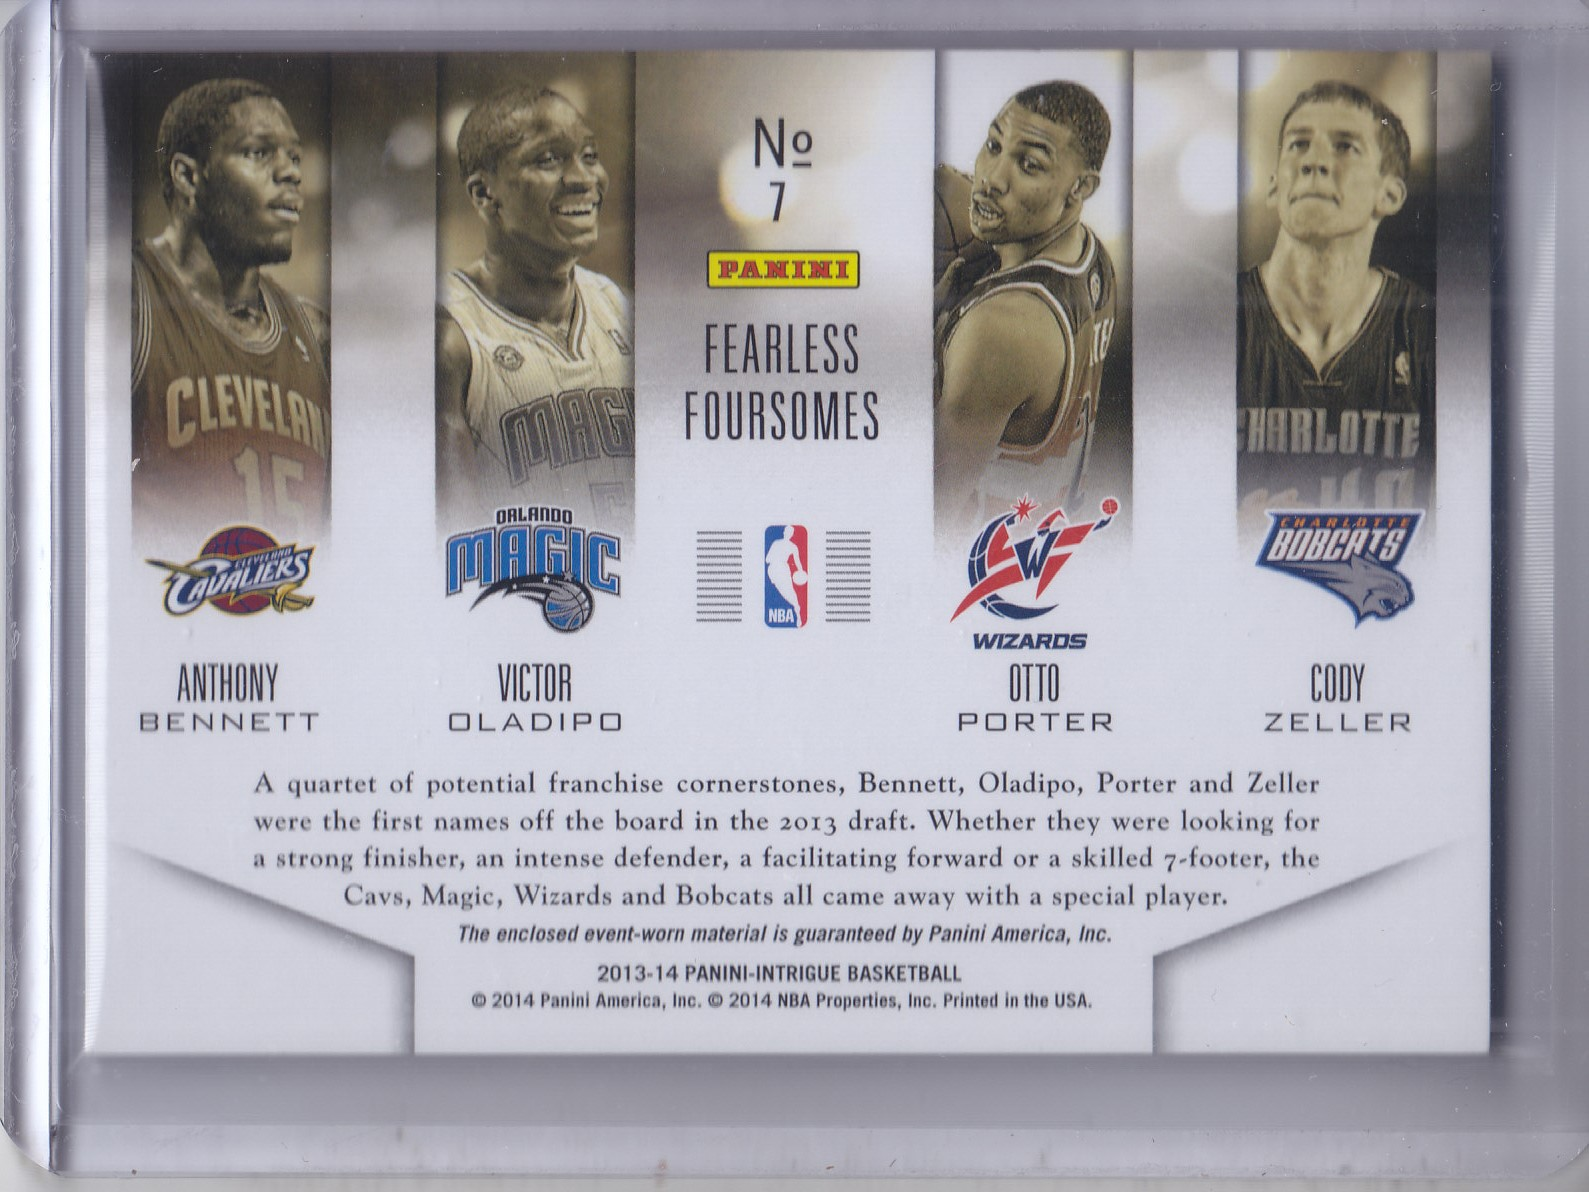 2013-14 Panini Intrigue Fearless Foursomes #7 Anthony Bennett/Cody Zeller/Otto Porter/Victor Oladipo/199